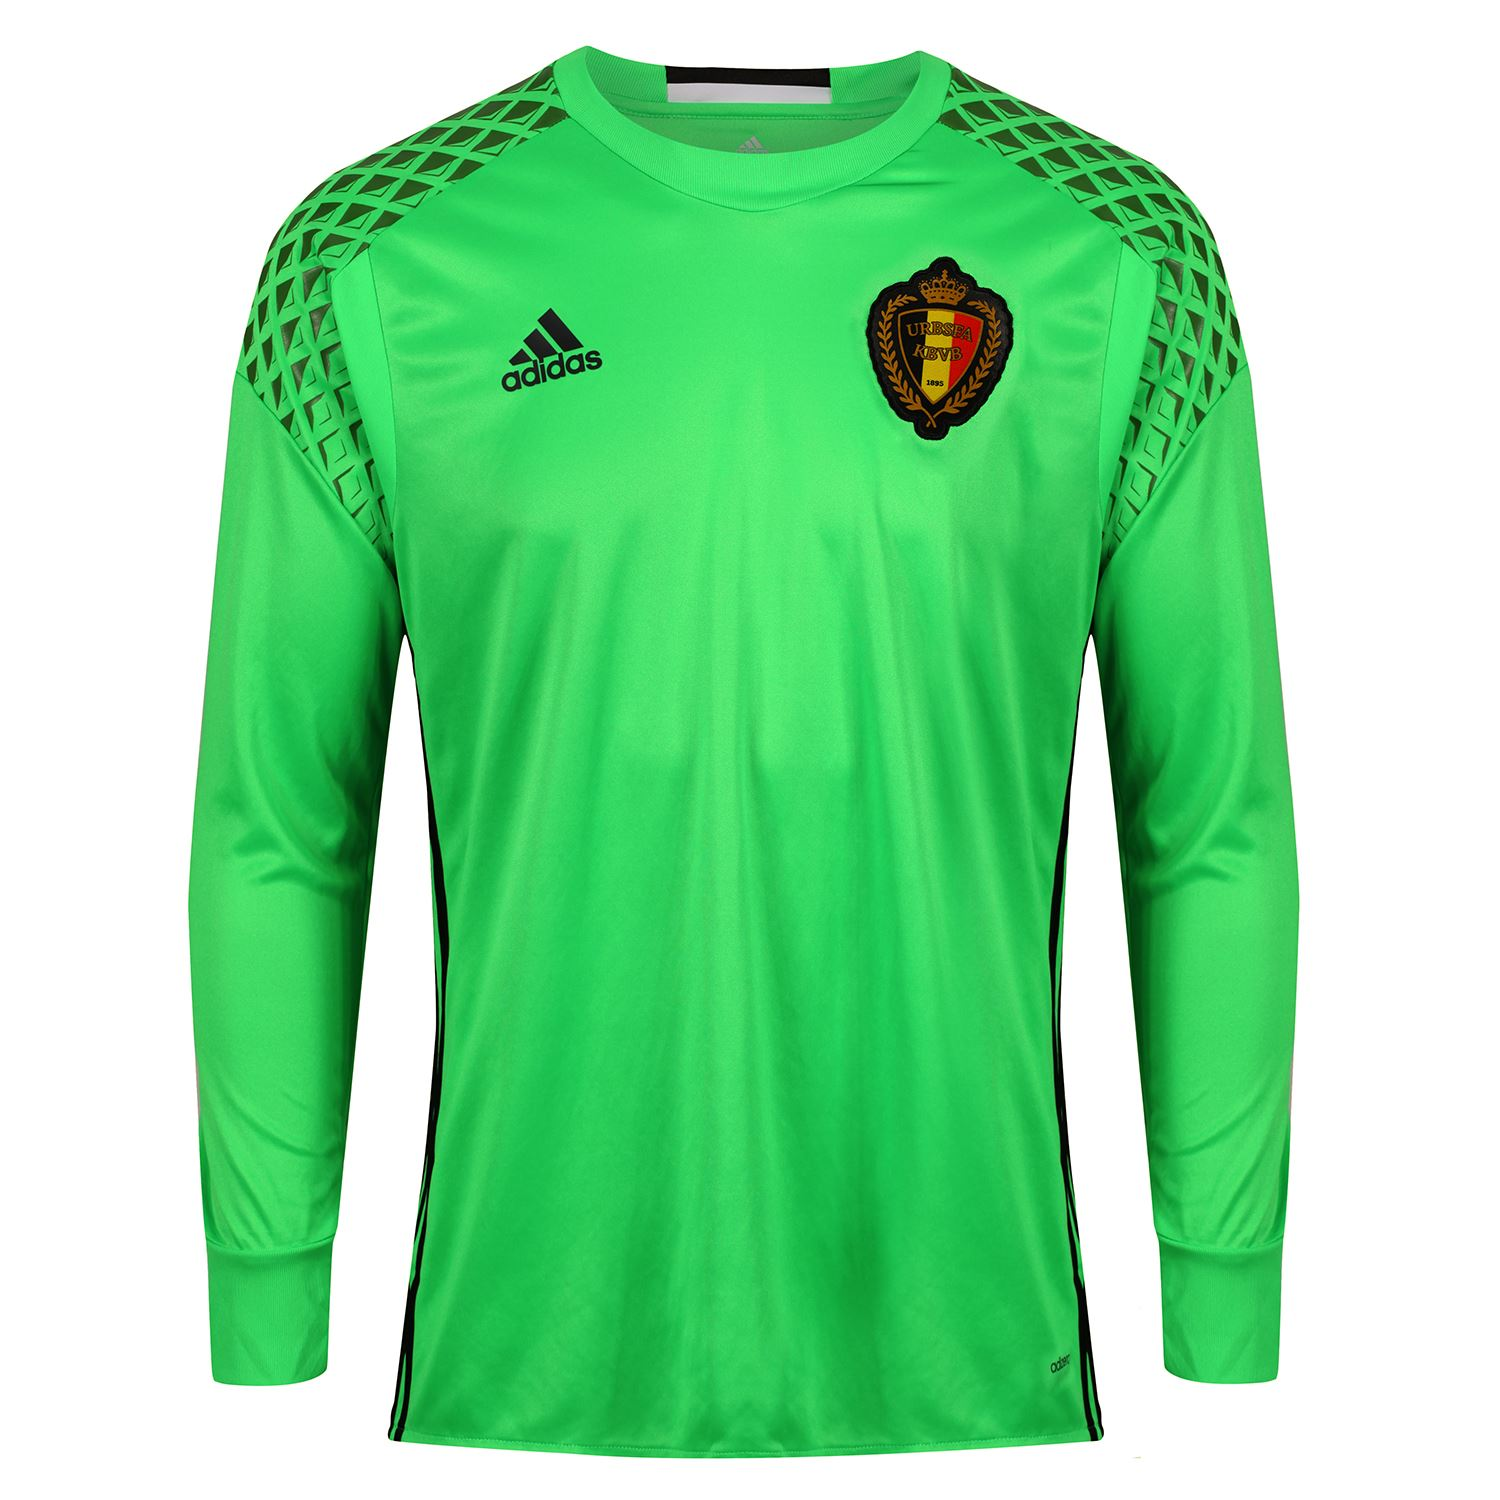 e5ac2a4cb Details about adidas SIZE S M L XL BELGIUM LONG SLEEVED GOALKEEPER TOP  PADDED SHIRT FOOTBALL